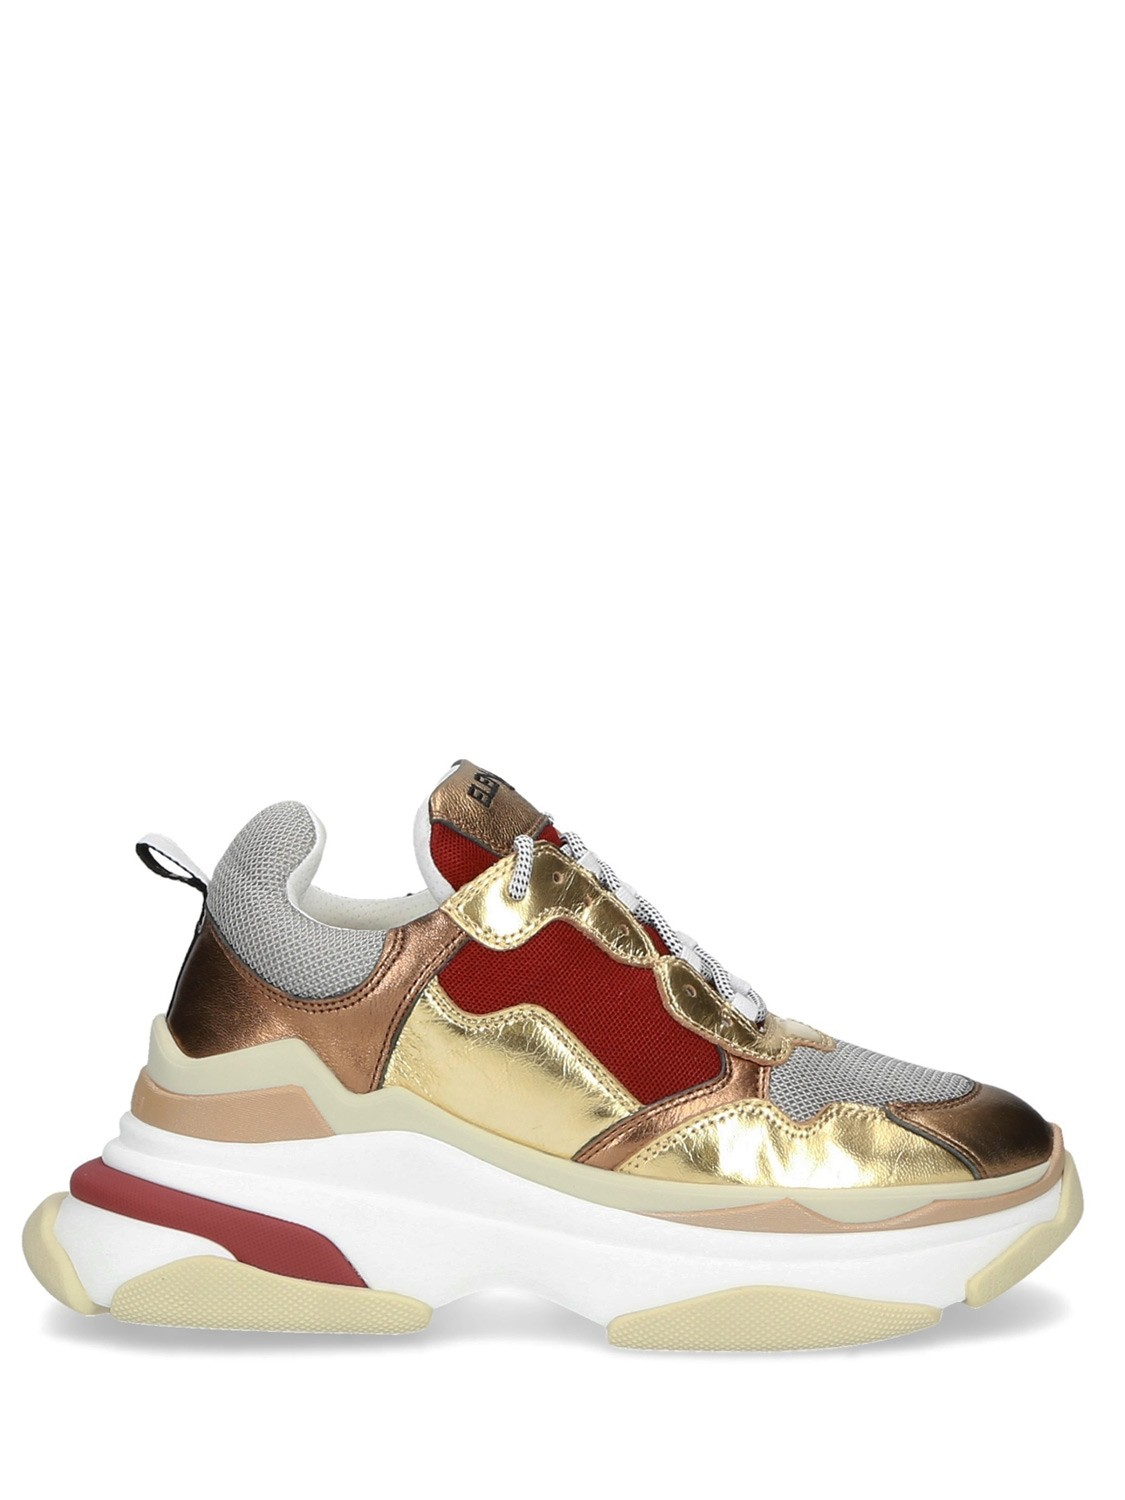 70MM LEATHER SNEAKER RED GOLD FABRIC